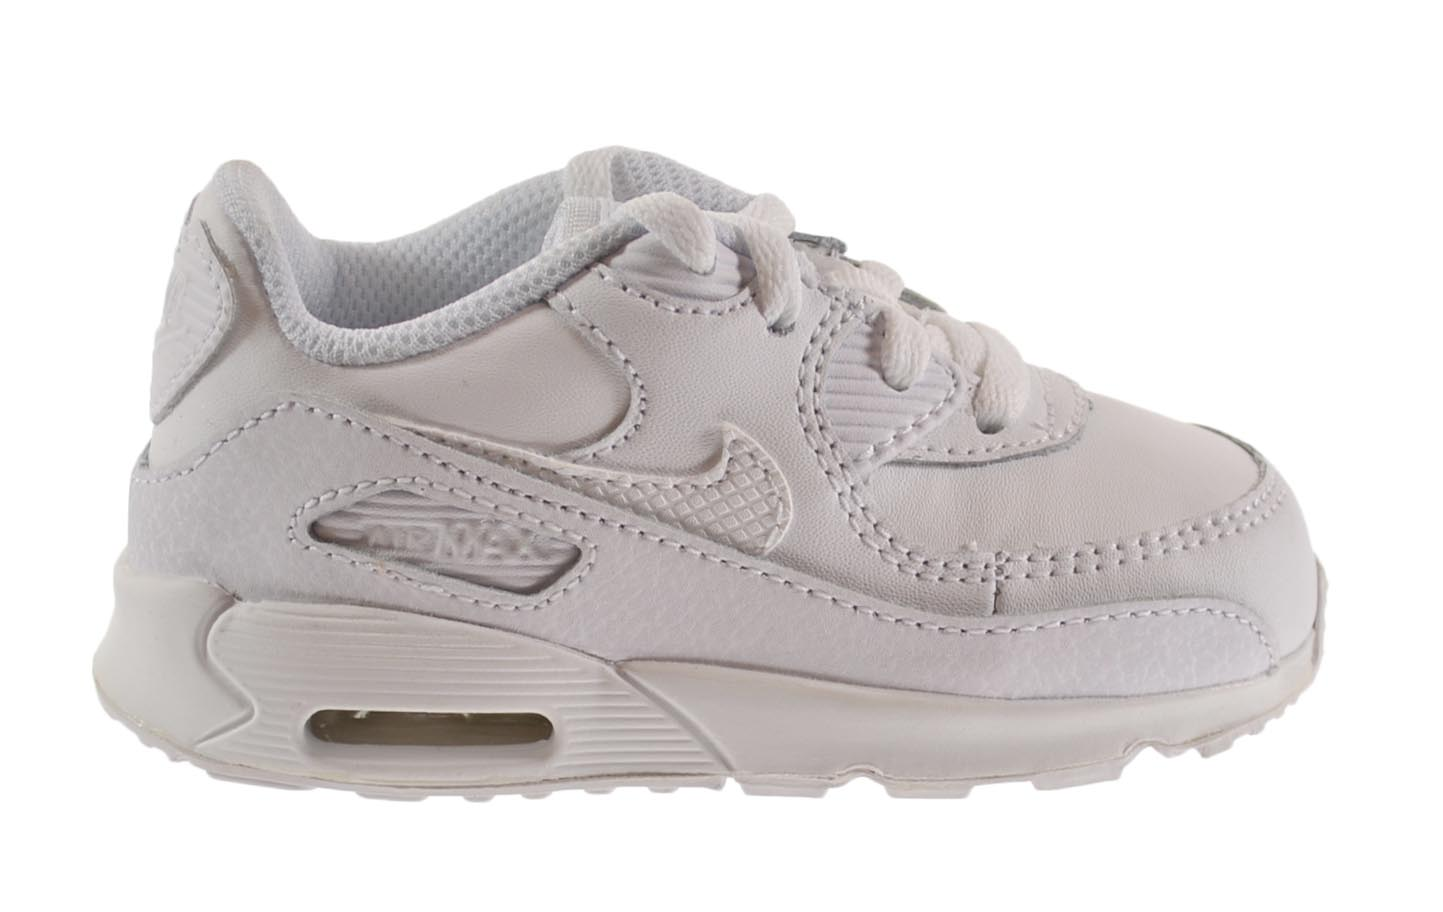 78c257b3833f ... real nike air max 90 td baby toddlers shoes white wolf grey 408110  902c5 588e6